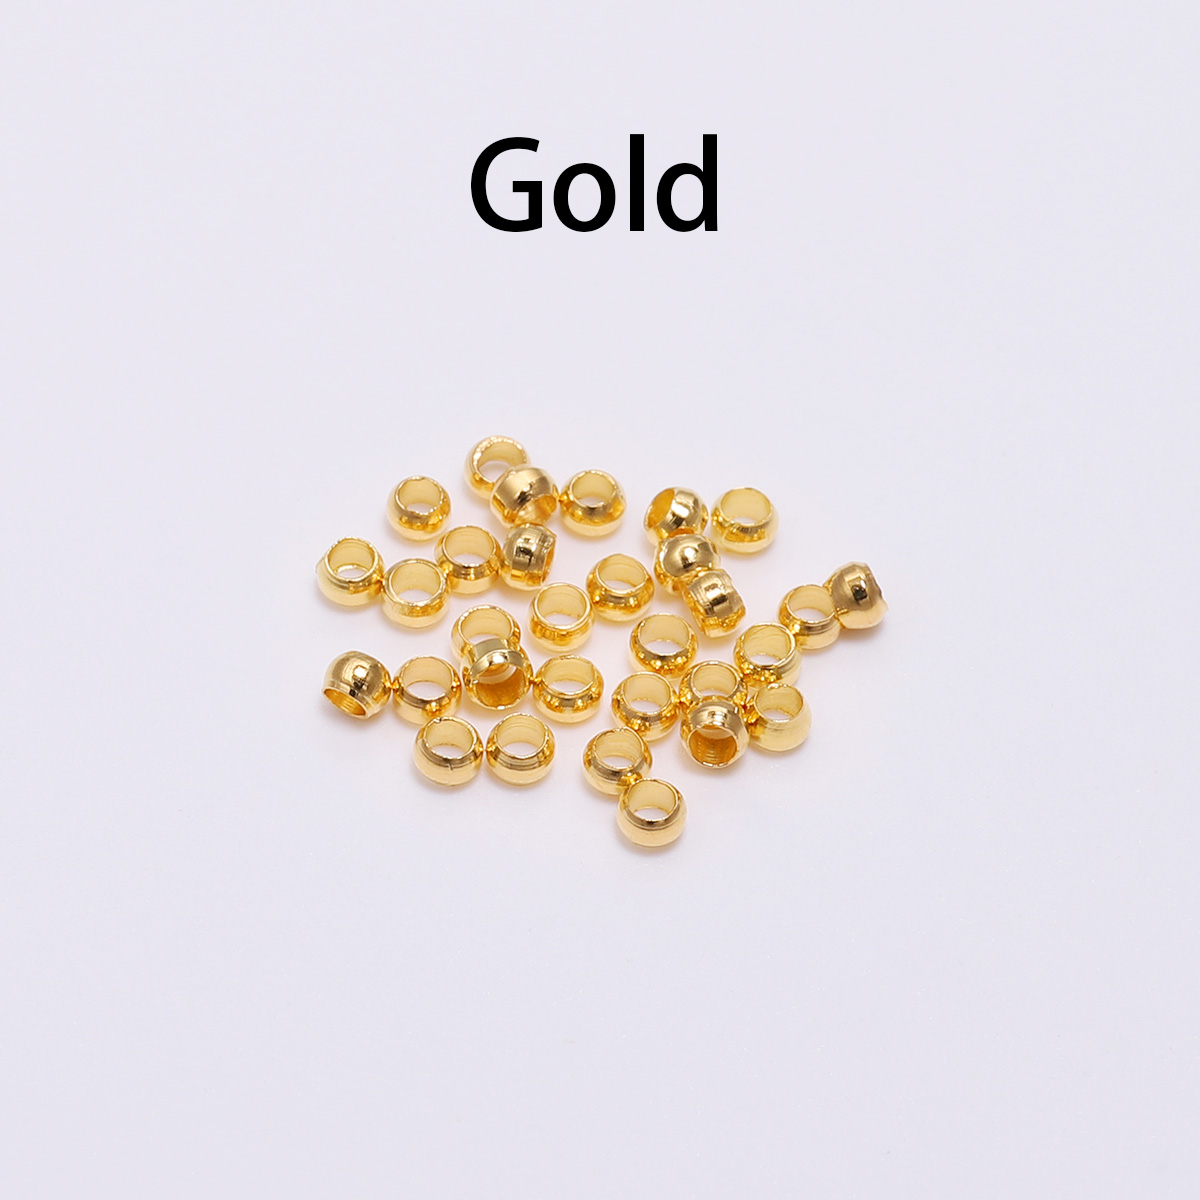 500pcs lot Gold Silver Copper Ball Crimp End Beads Dia 2 2 5 3 mm Stopper